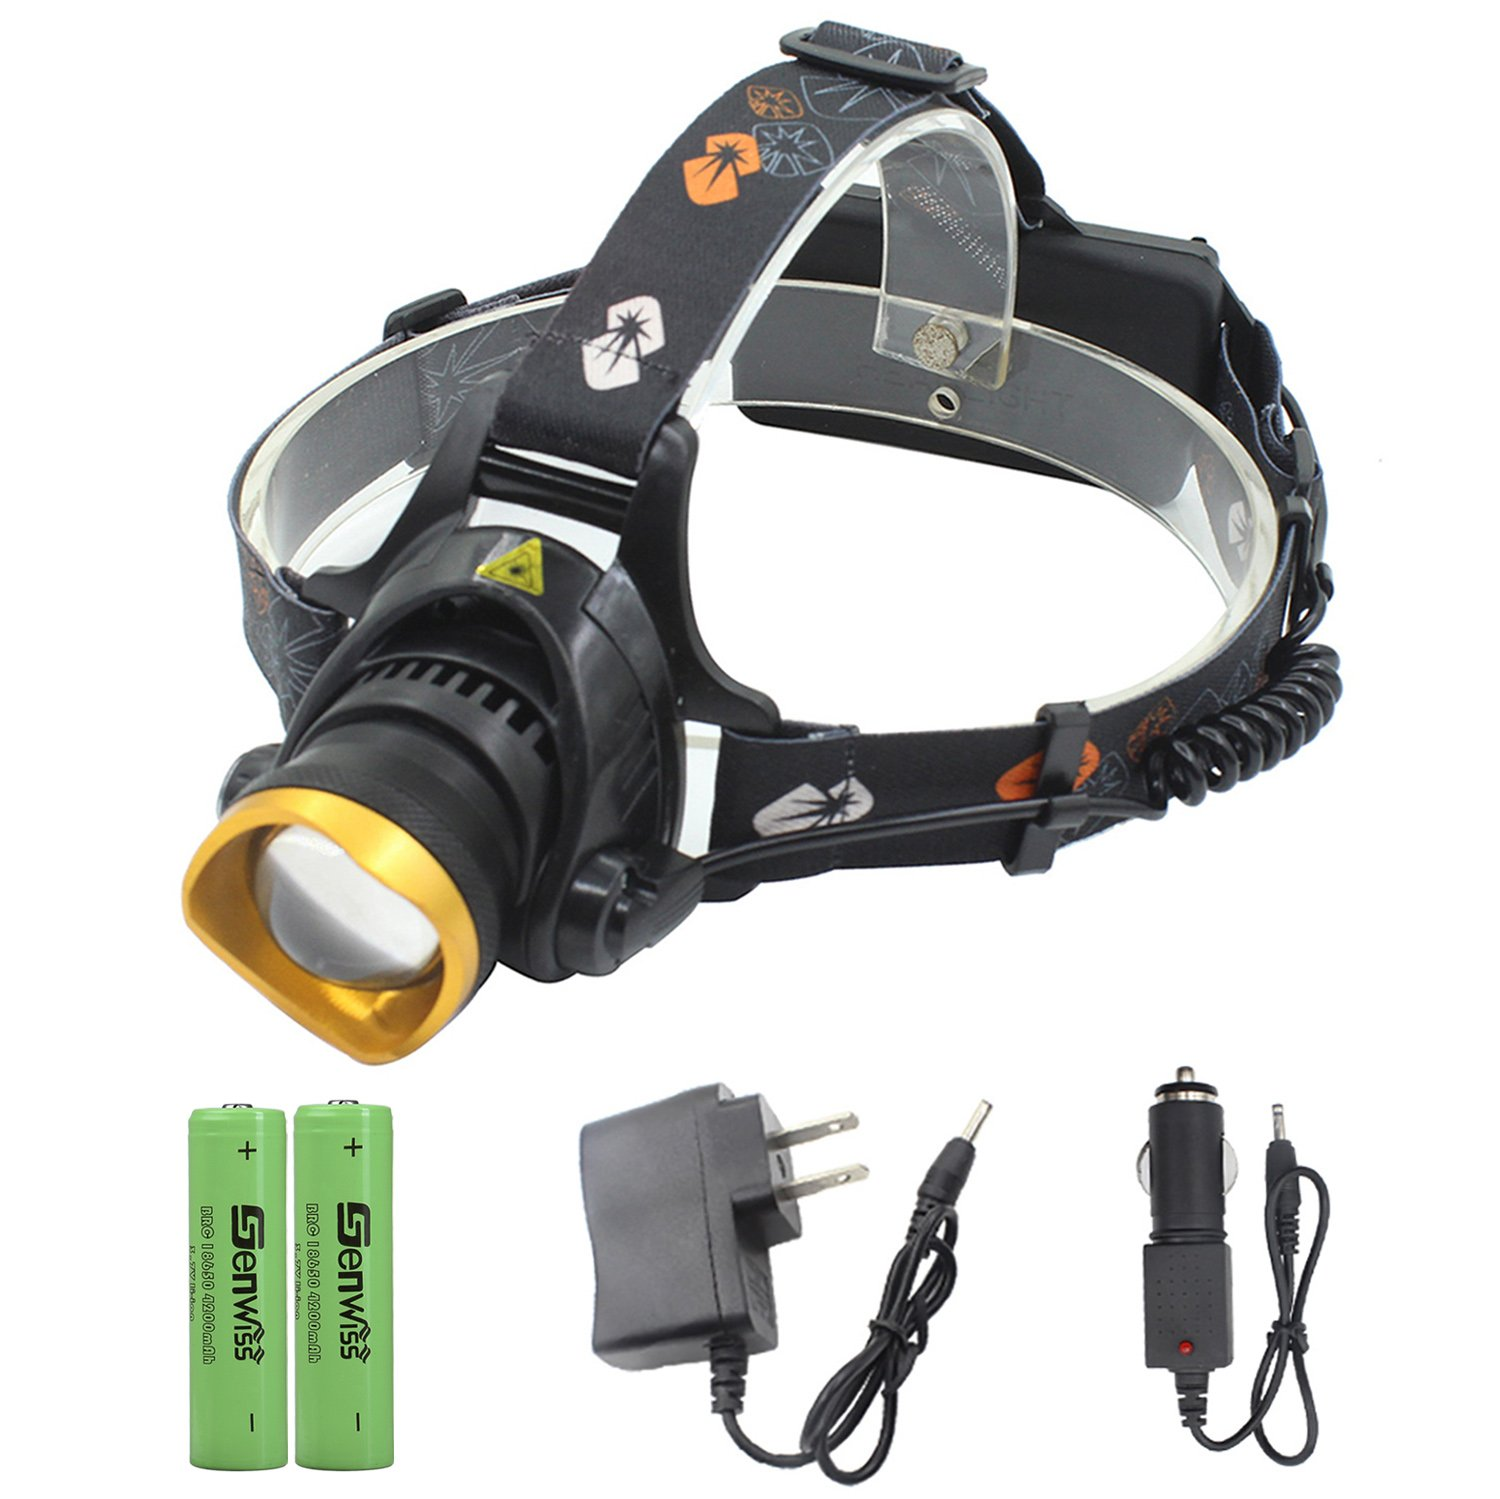 LED Headlamp Super Bright Headlight - Genwiss 3000 lumen T6 Waterproof Zoomable Headlamp with Rechargeable Batteries, Car Charger, Wall Charger for Camping Biking Hunting Fishing